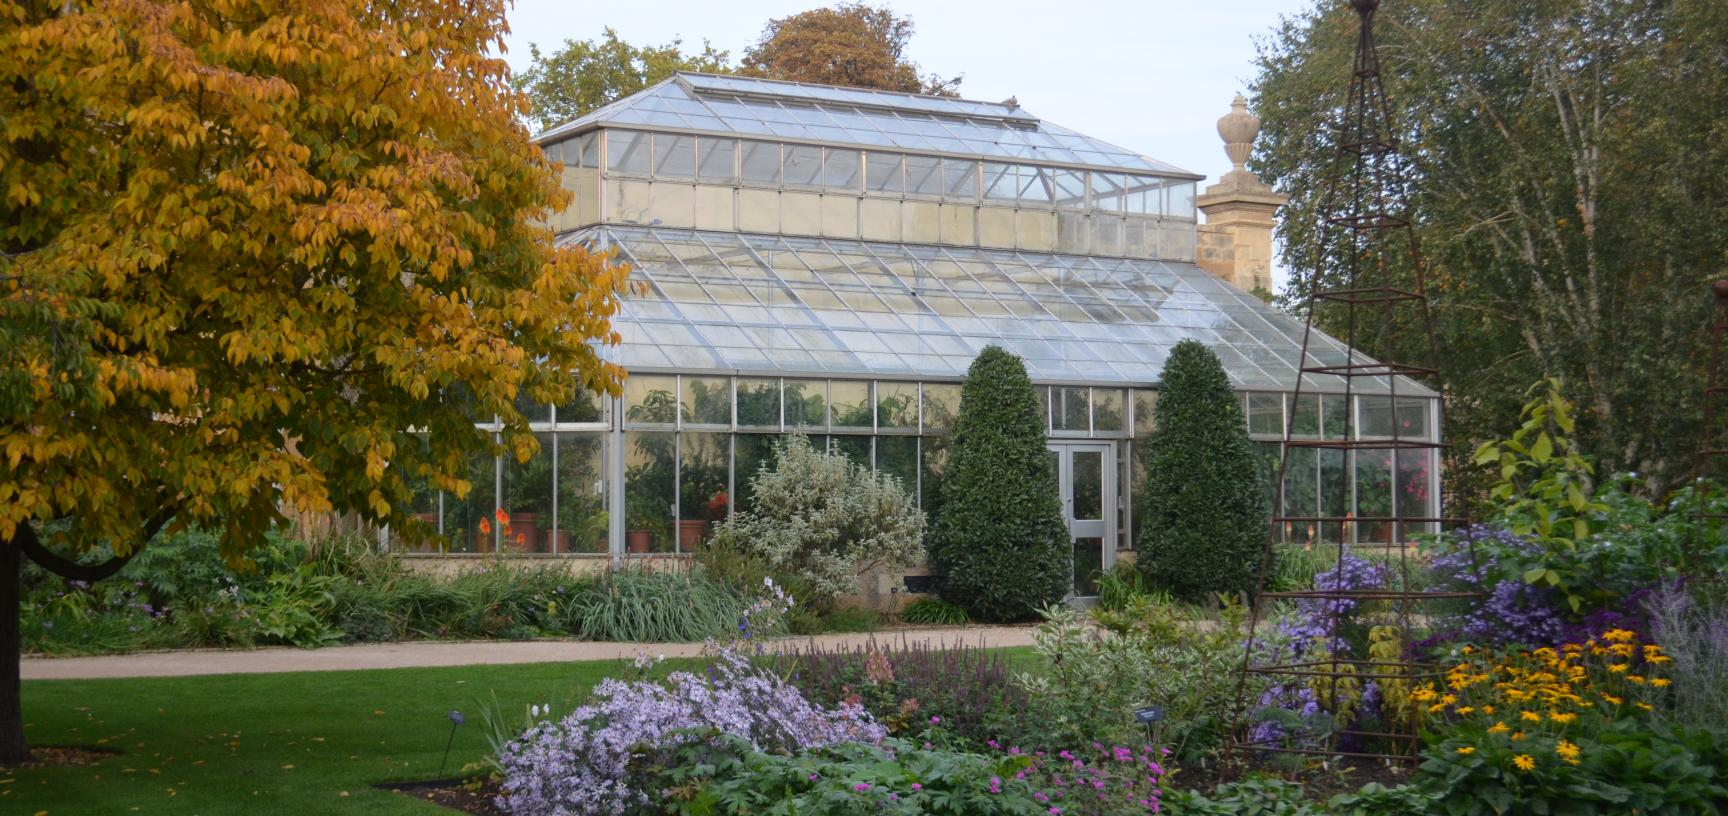 Conservatory in Autumn